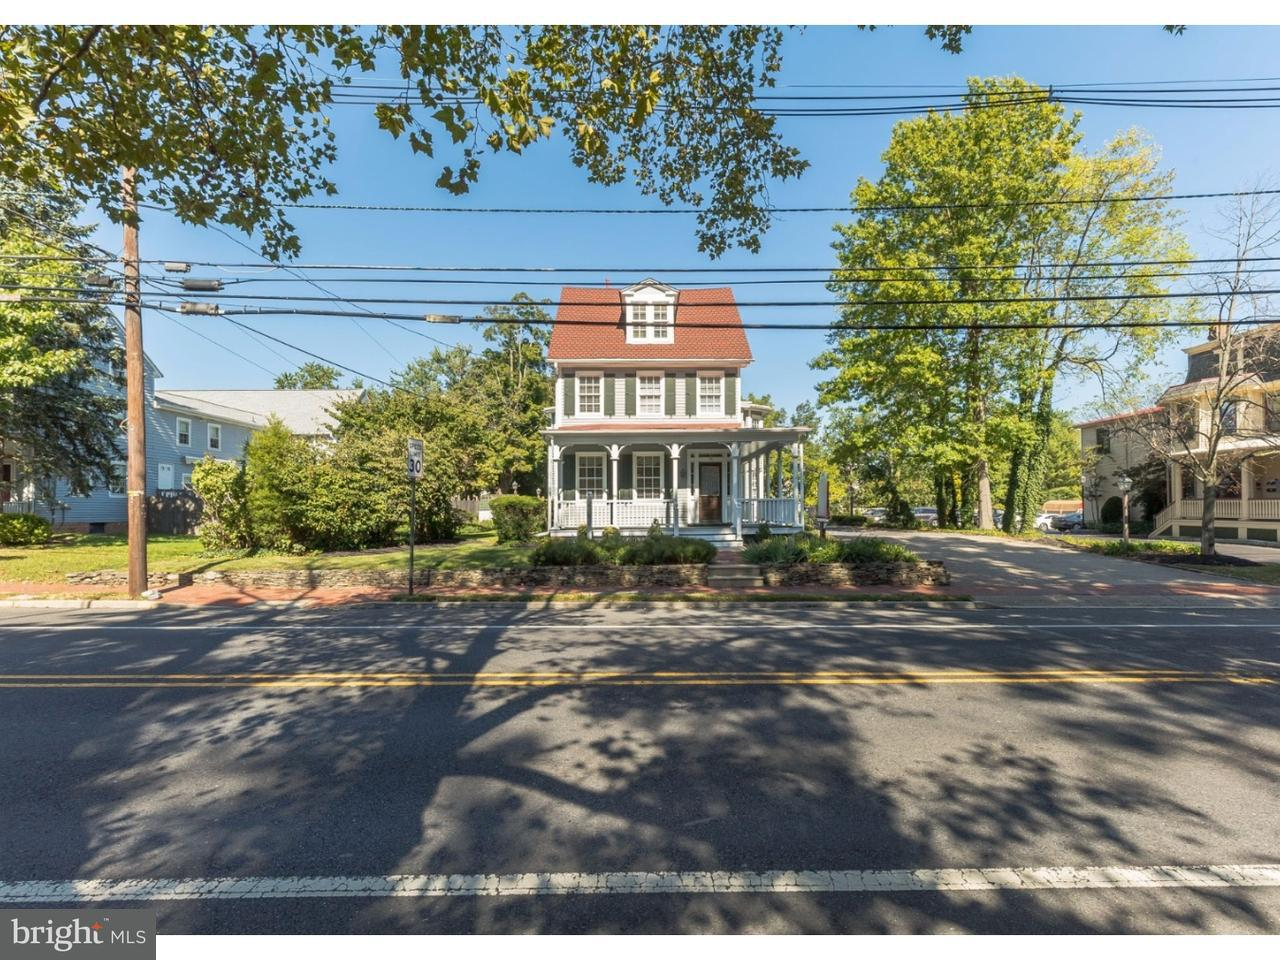 Single Family Home for Sale at 76 E MAIN Street Evesham Twp, New Jersey 08053 United States